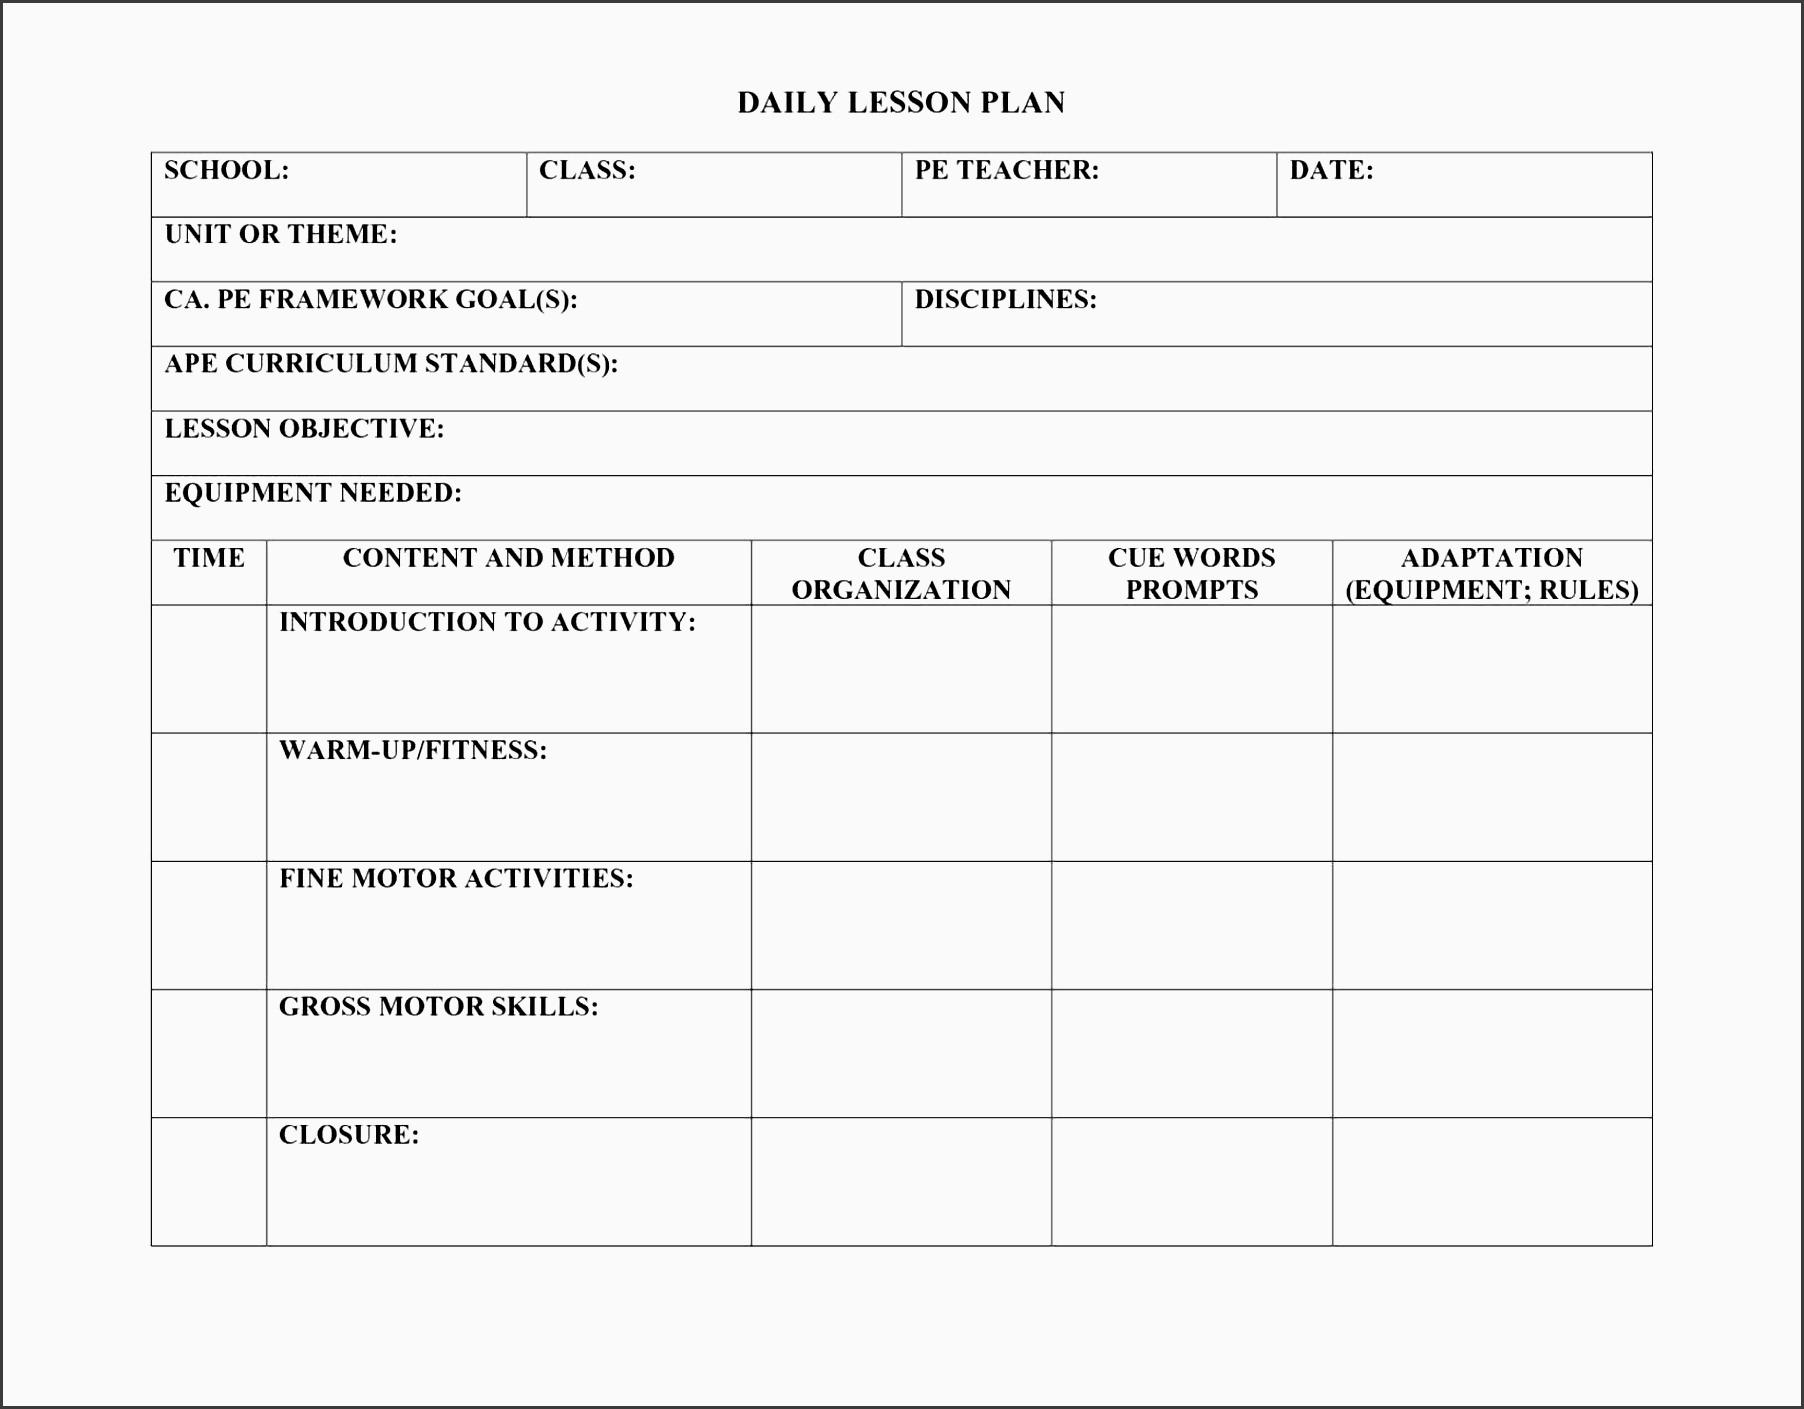 lesson plan template daily visual daily lesson plan template high school art lesson plan template daily